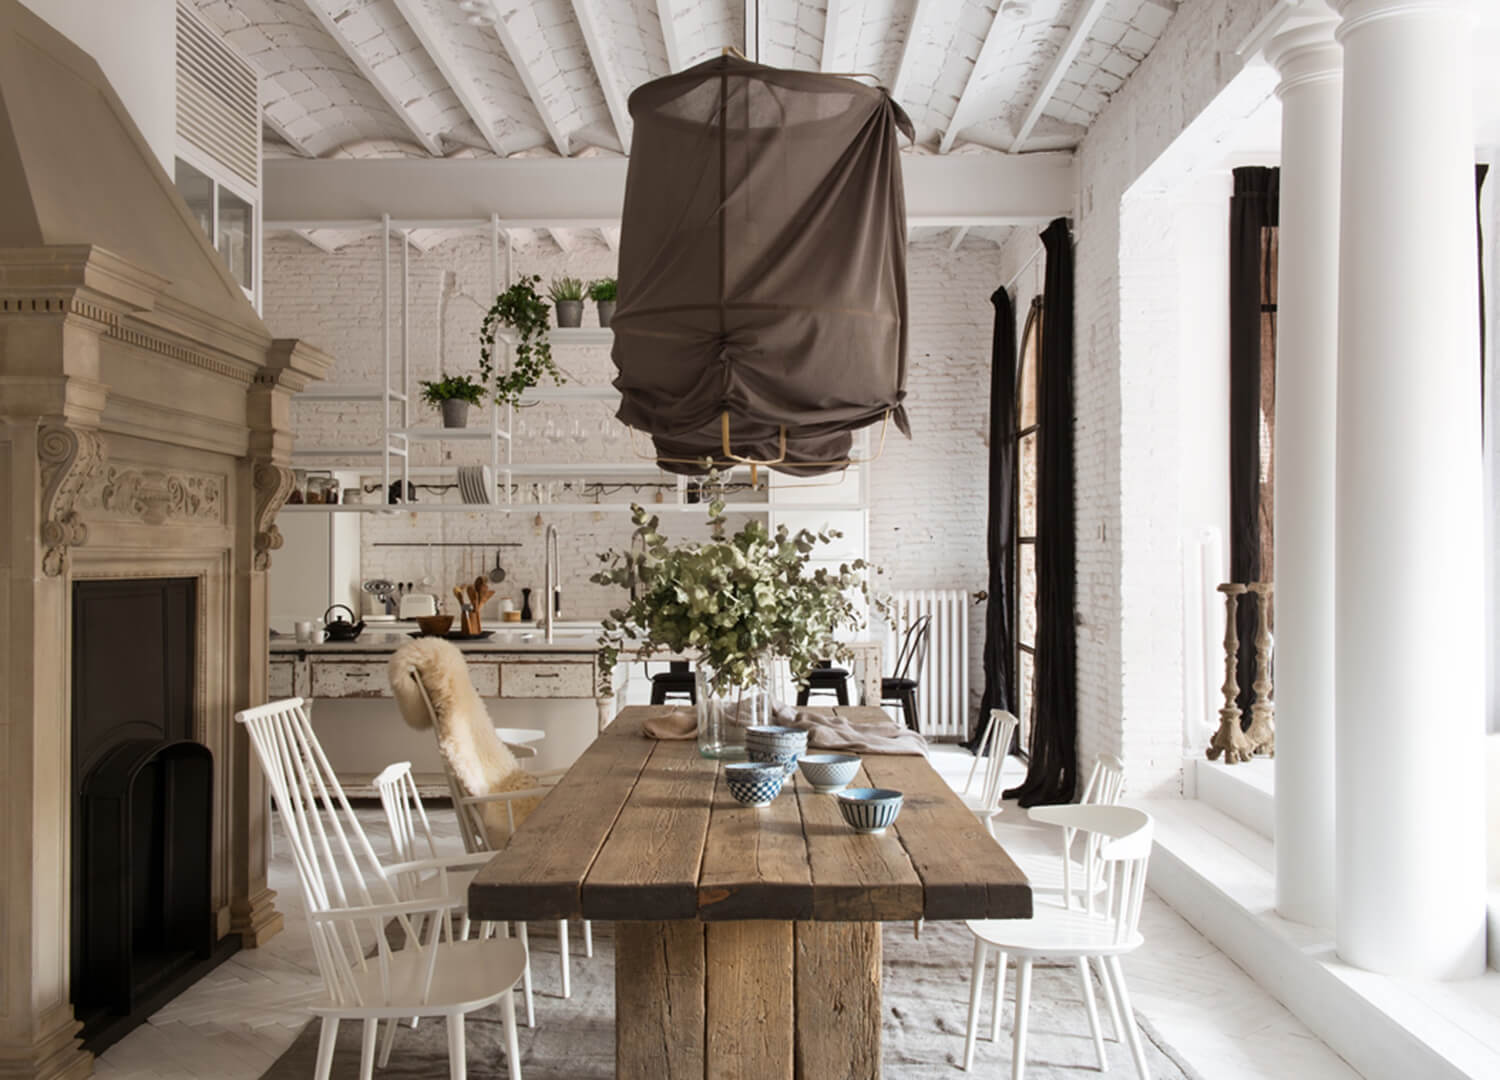 est-living-barcelona-loft-serrat-tort-architects-dining-table